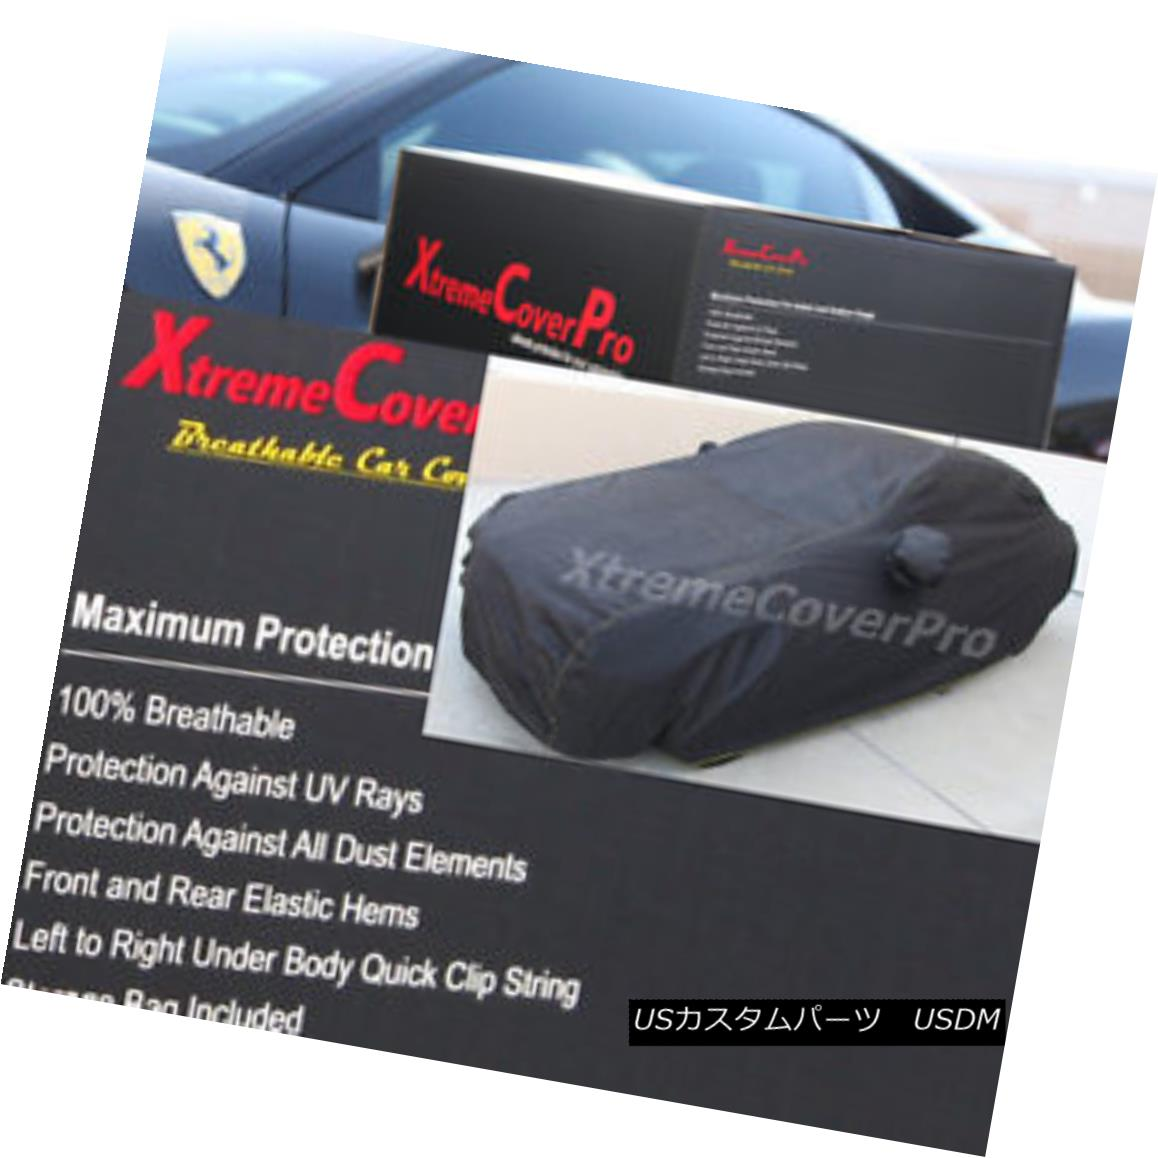 カーカバー 2016 MINI PACENAB BREATHABLE CAR COVER W/MIRROR POCKET - BLACK 2016 MINI PACENAB BREATHABLE CAR COVER W / MIRROR POCKET - ブラック